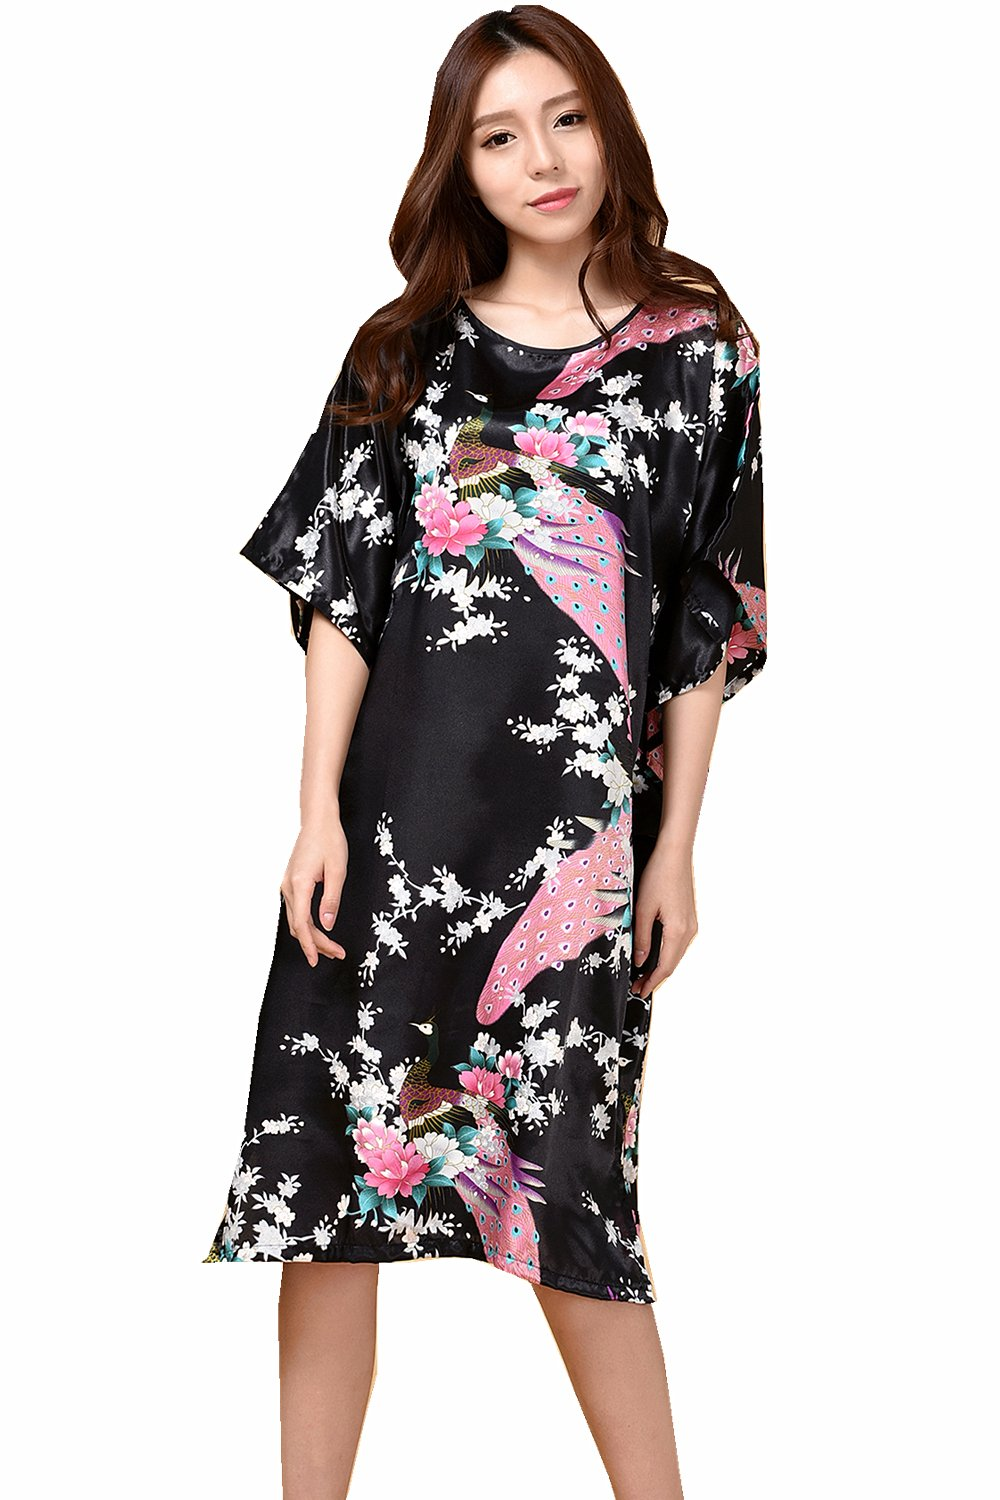 GAOLIGUO GL&G Animal pattern lady silk bathrobe thin section pajamas printing single skirt loose large yards home service comfortable black bathrobes,black,One size by GAOLIGUO (Image #3)